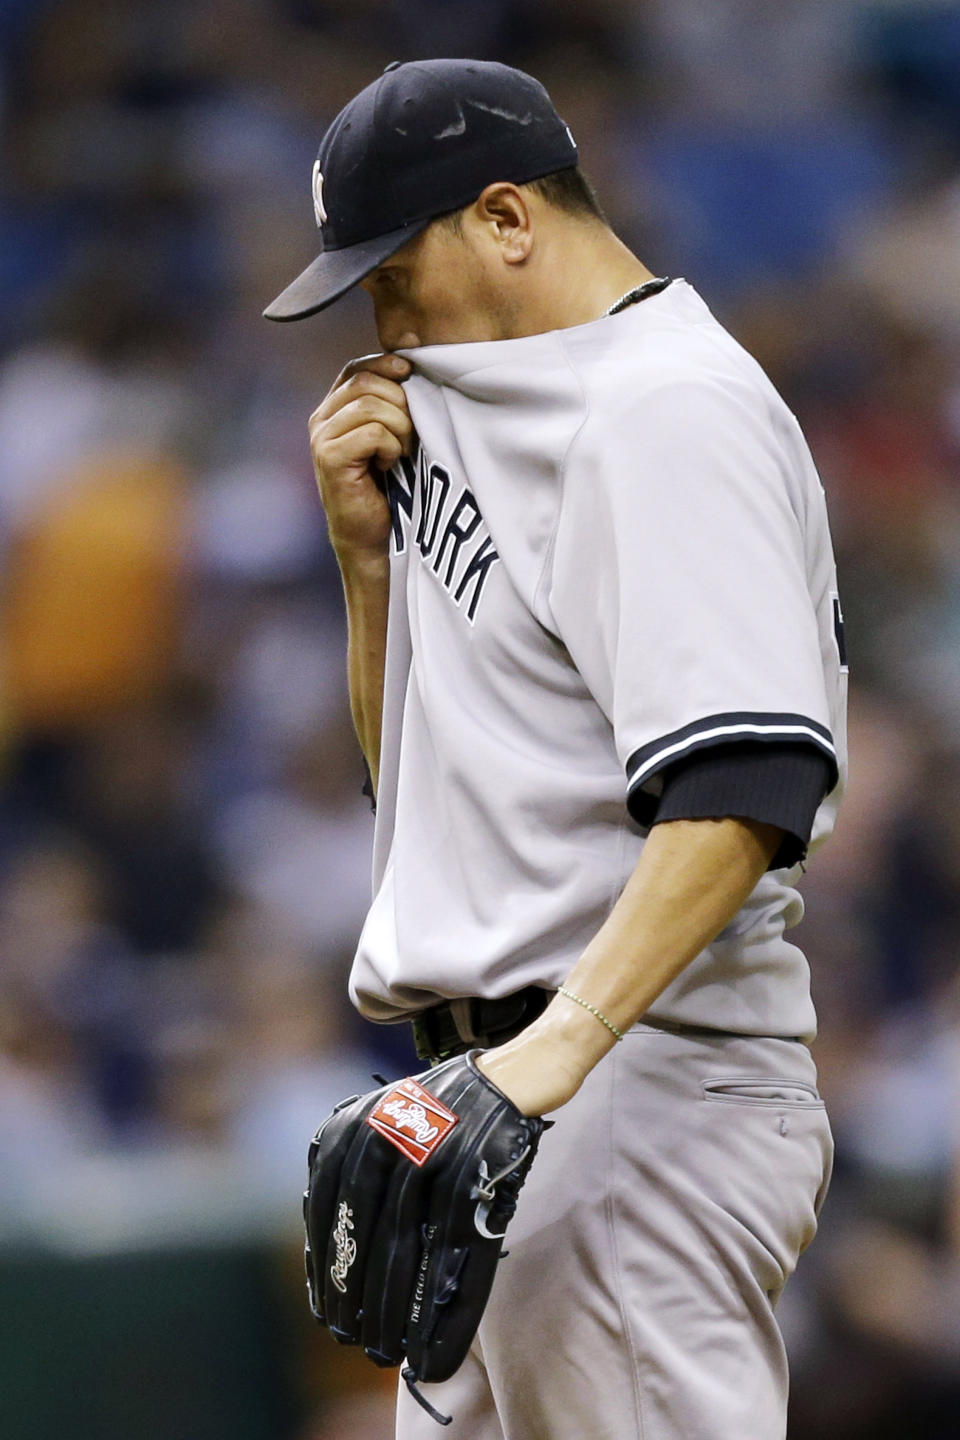 New York Yankees starting pitcher Freddy Garcia reacts during the fifth inning of a baseball game against the Tampa Bay Rays, Tuesday, Sept. 4, 2012, in St. Petersburg, Fla. (AP Photo/Chris O'Meara)